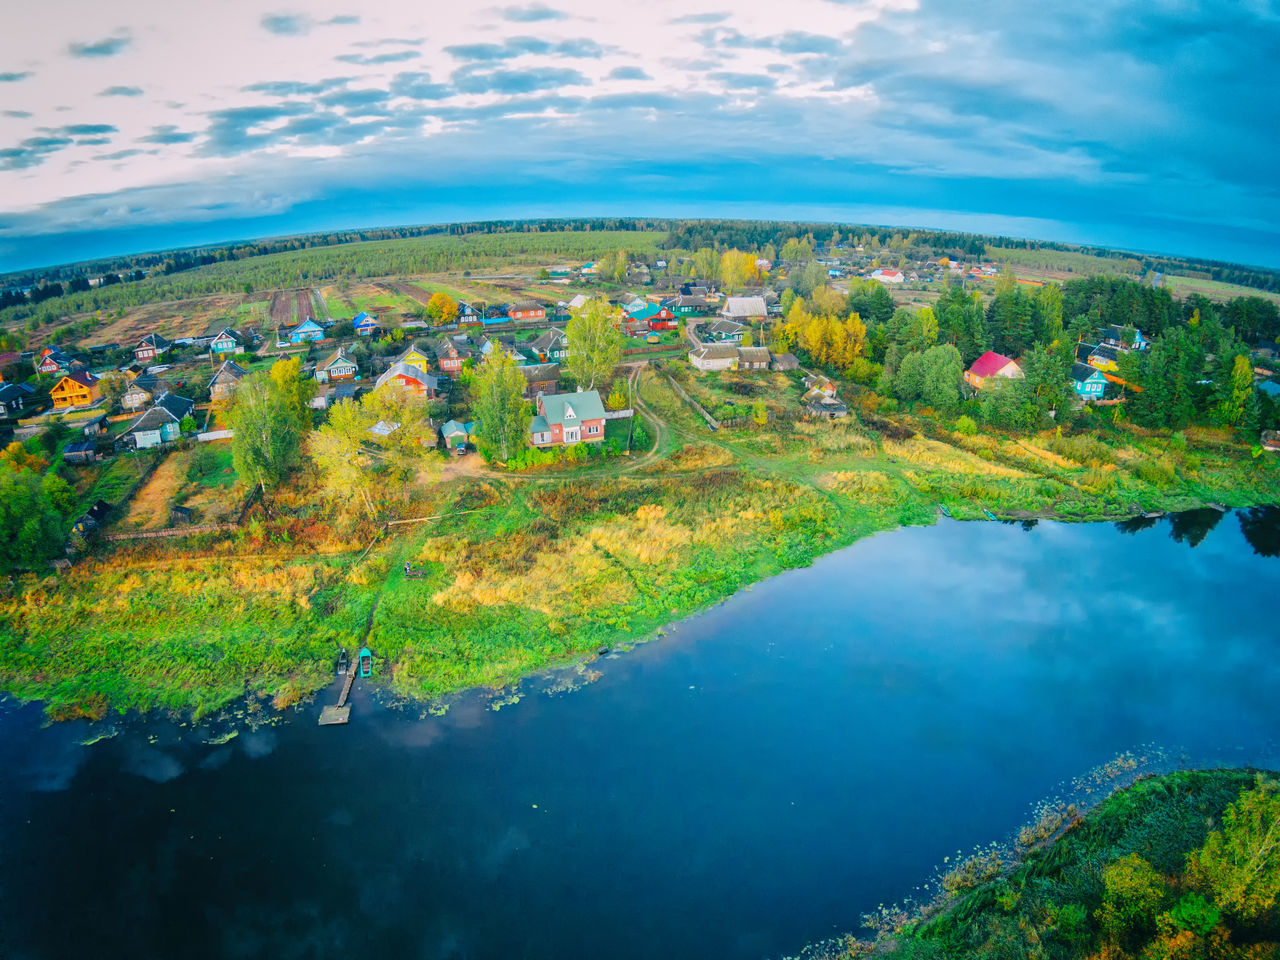 The village on the banks of the river Mologa. One of the many villages Maksatihinsky district of Tver region. Aerial Shot Aerial View Cityscape Cloud - Sky Drone  Dronephotography Landscape Mologa Multi Colored Nature No People Outdoors Panoramic River Rural Scene Scenics Sky Tourism Tranquility Travel Travel Destinations Urban Skyline Vacations Village Water